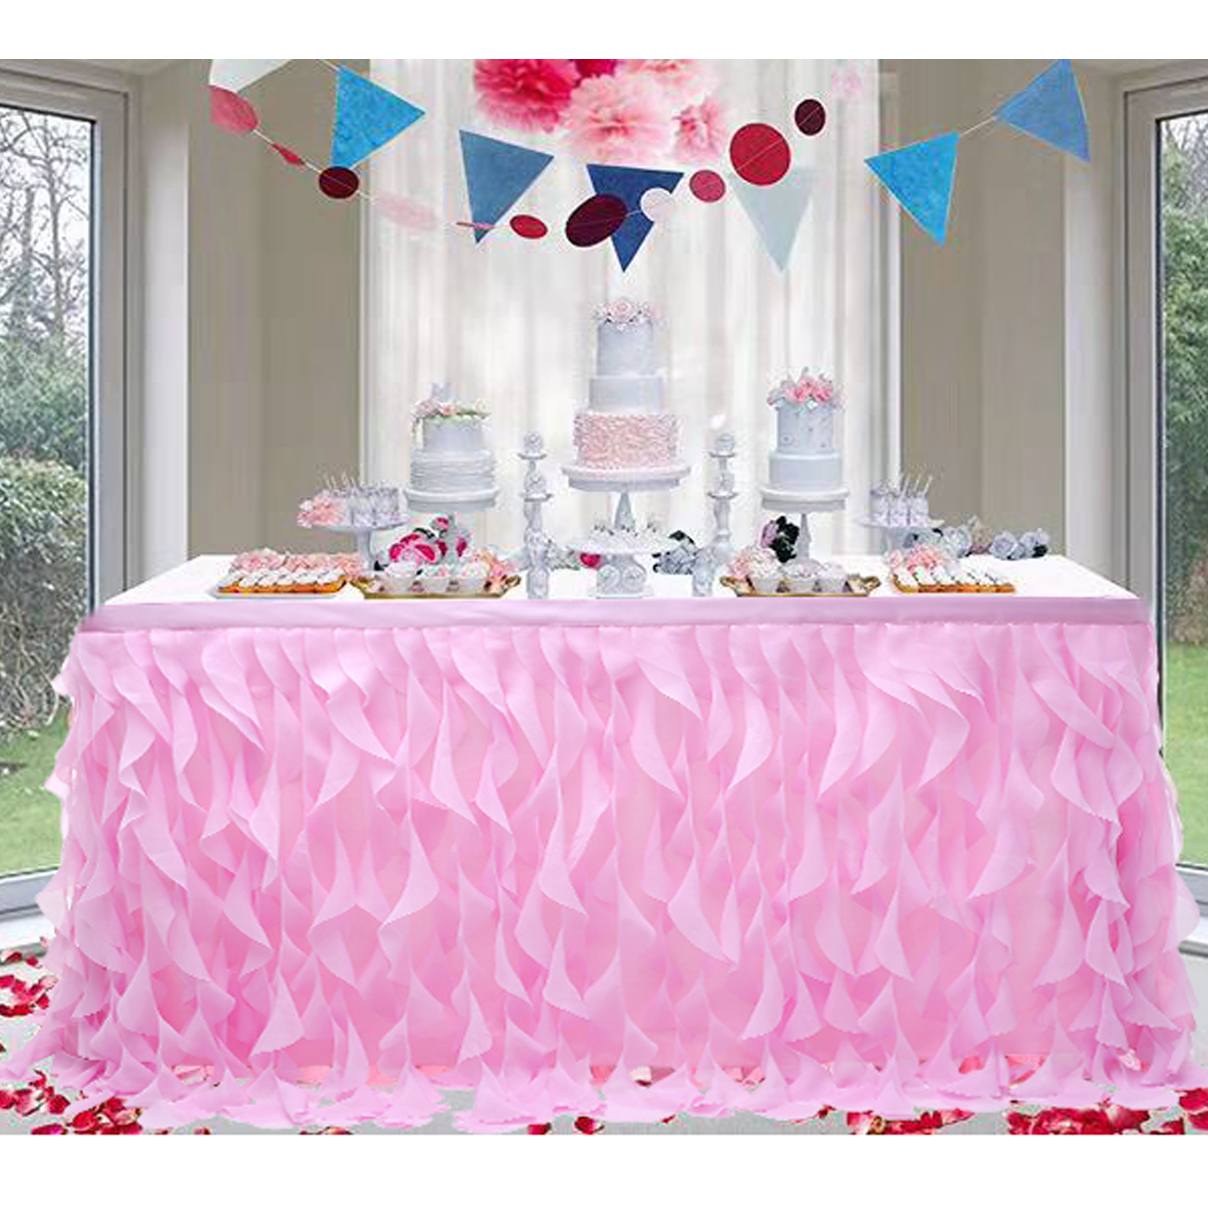 Tulle Table Skirt Colorful Tablecloth Wedding Banquet Birthday Party Wave Table Cover Decoration Christmas Decor